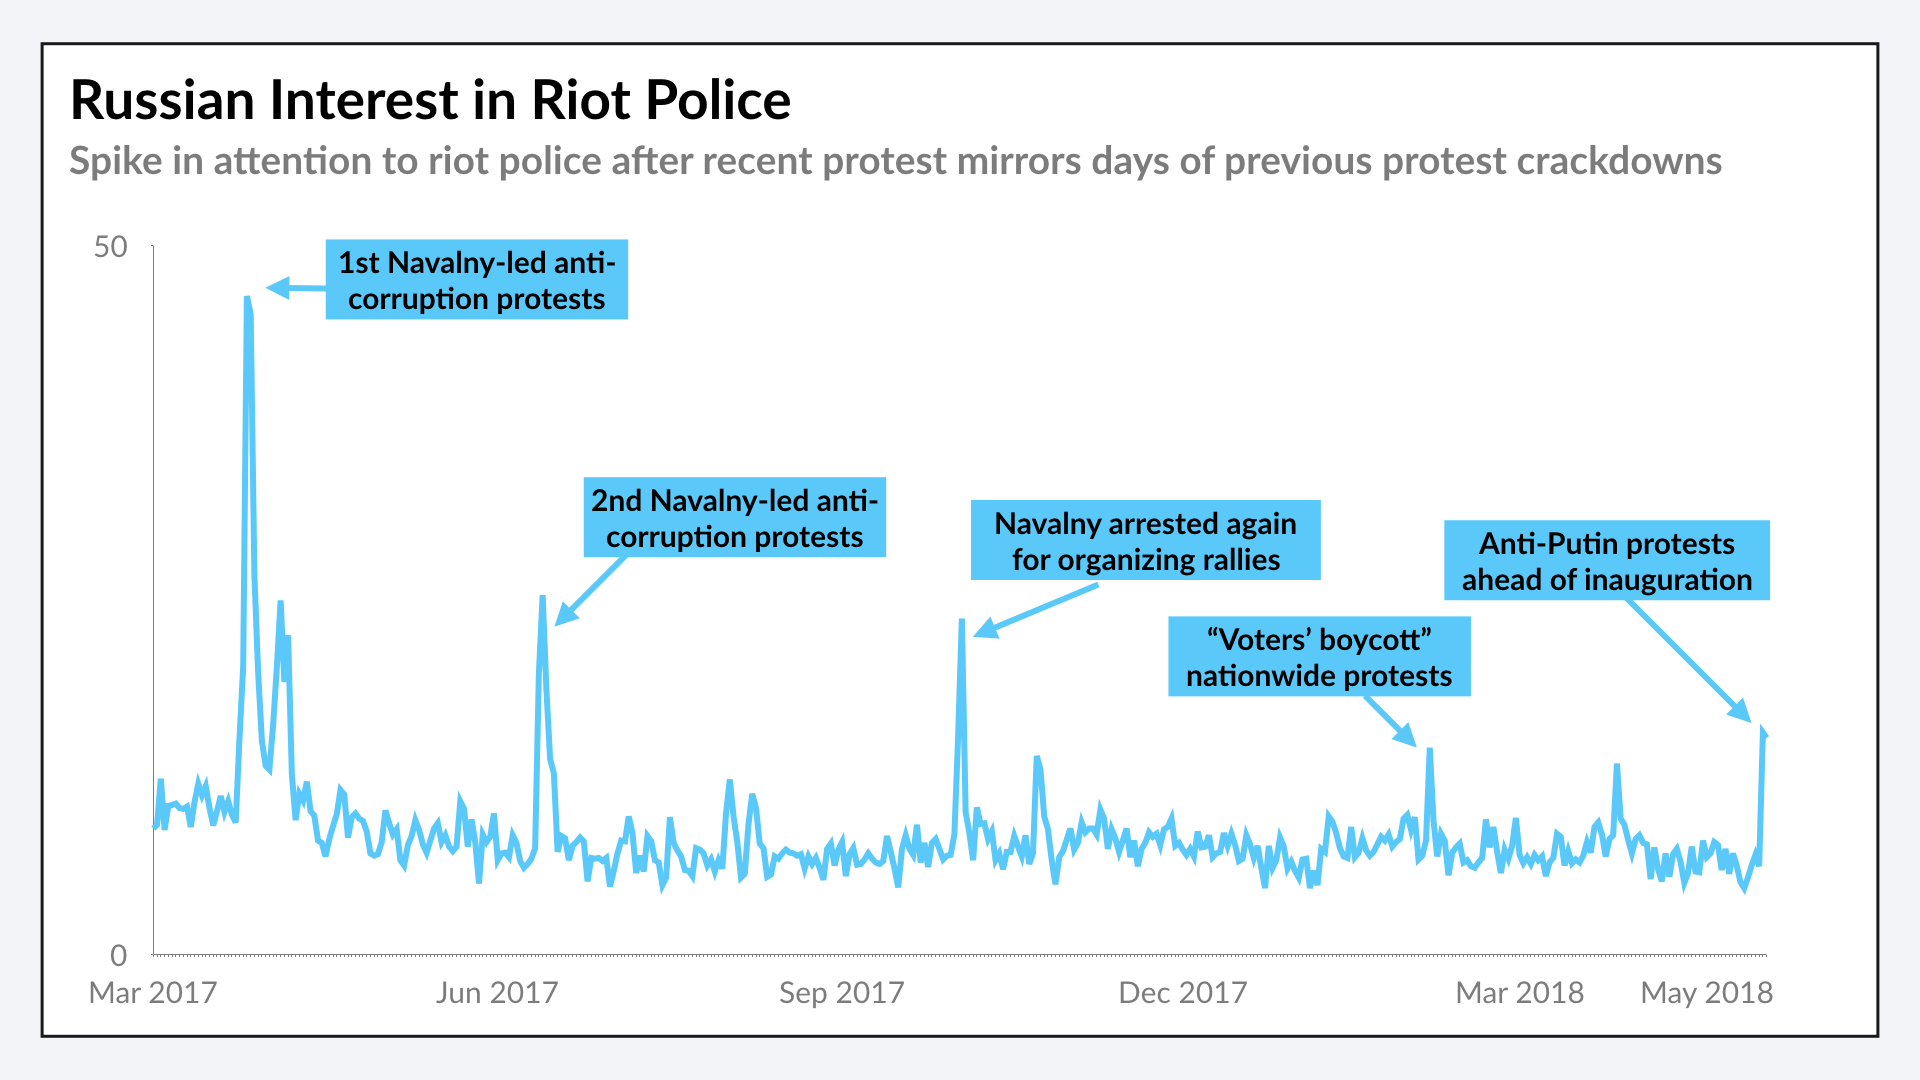 Russian Interest in Riot Police